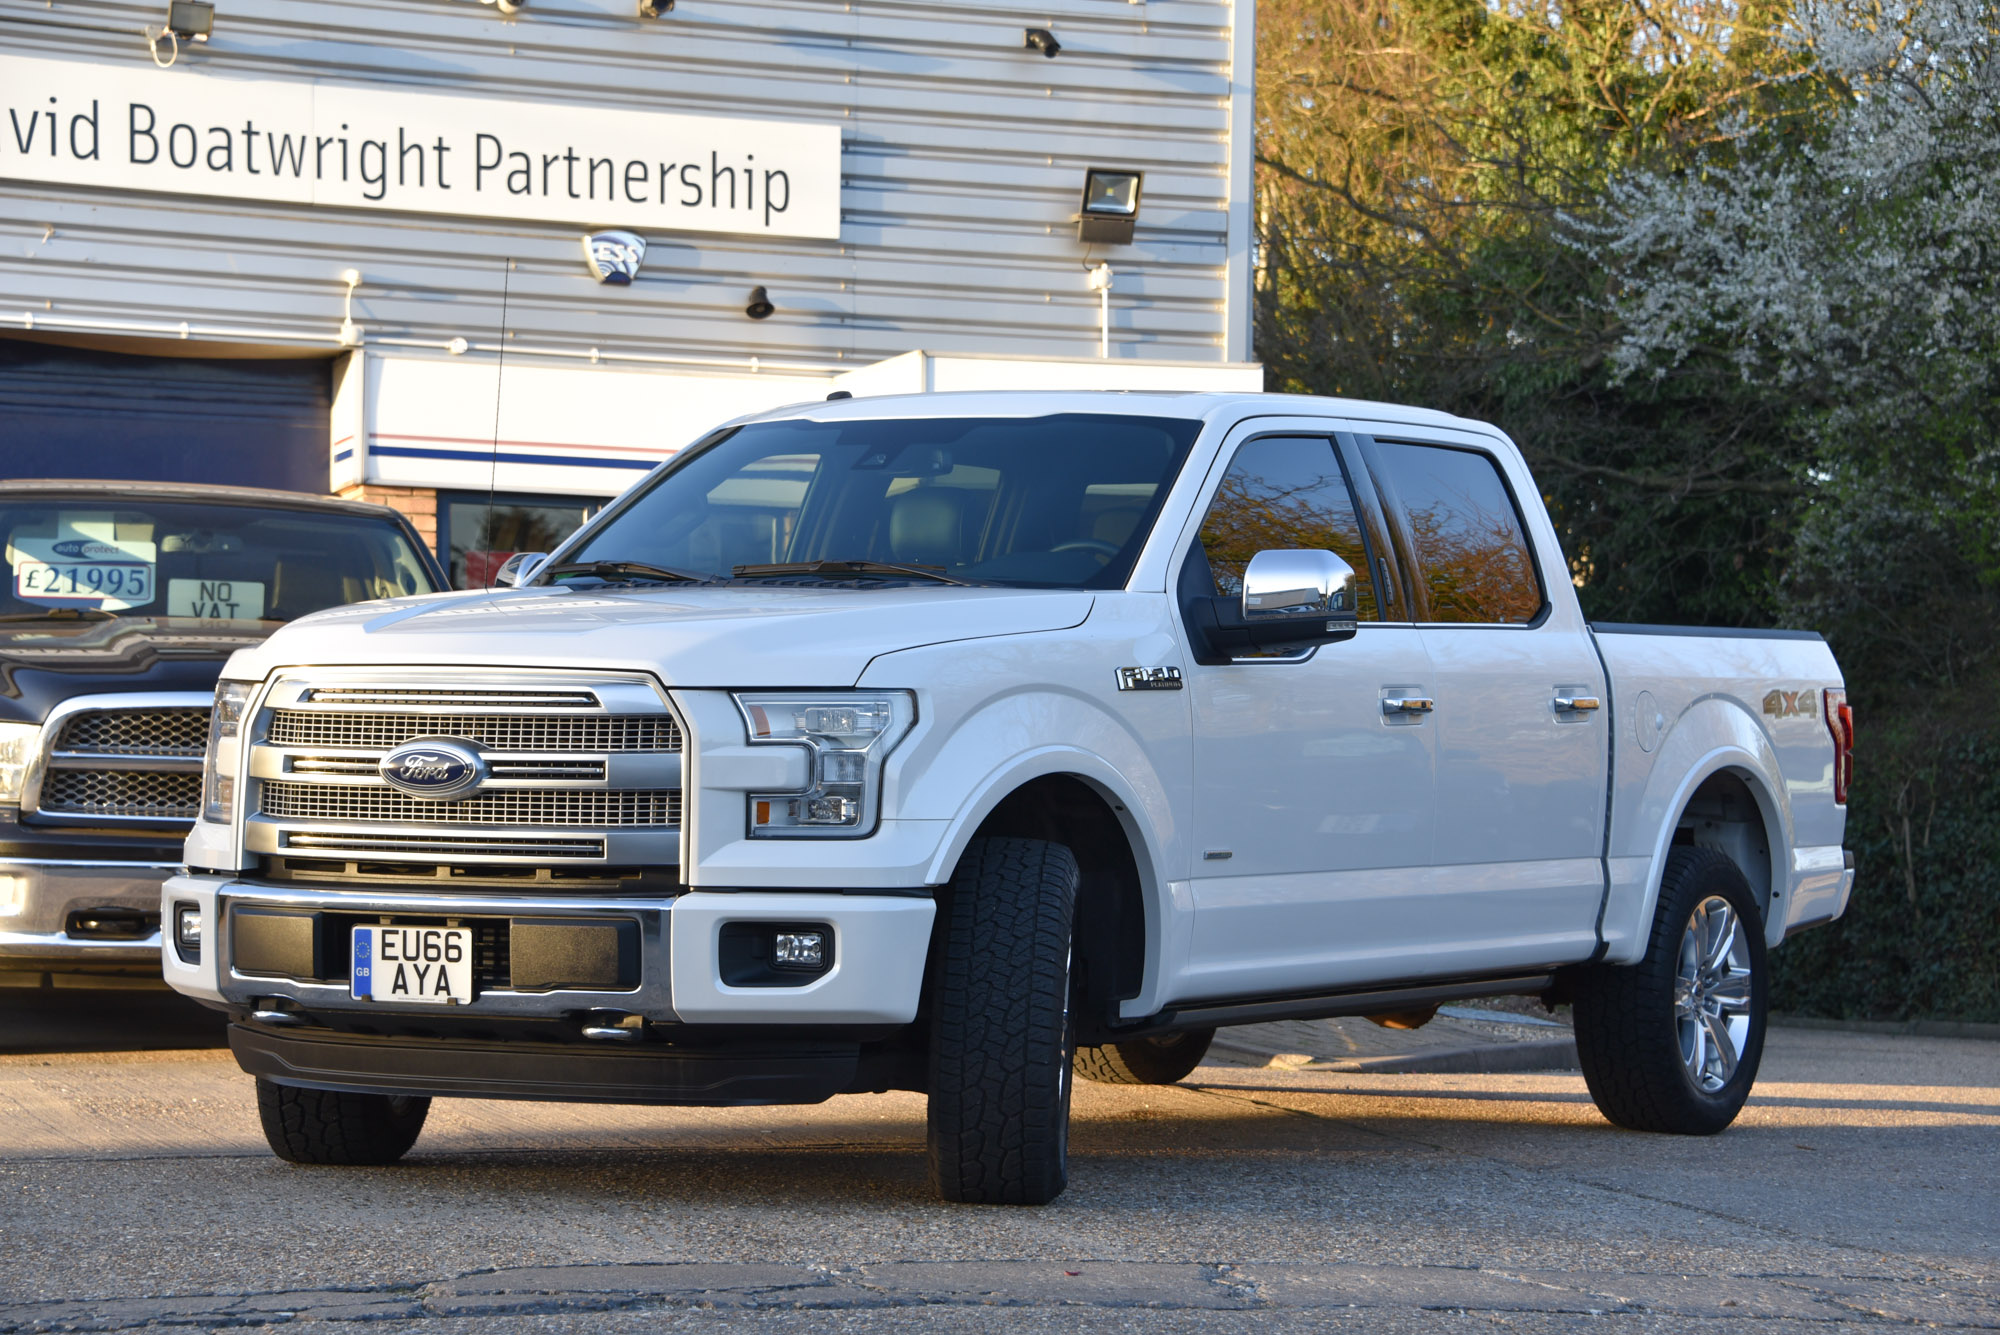 for sale ford f150 platinum super crew 4x4 1 500 miles. Black Bedroom Furniture Sets. Home Design Ideas